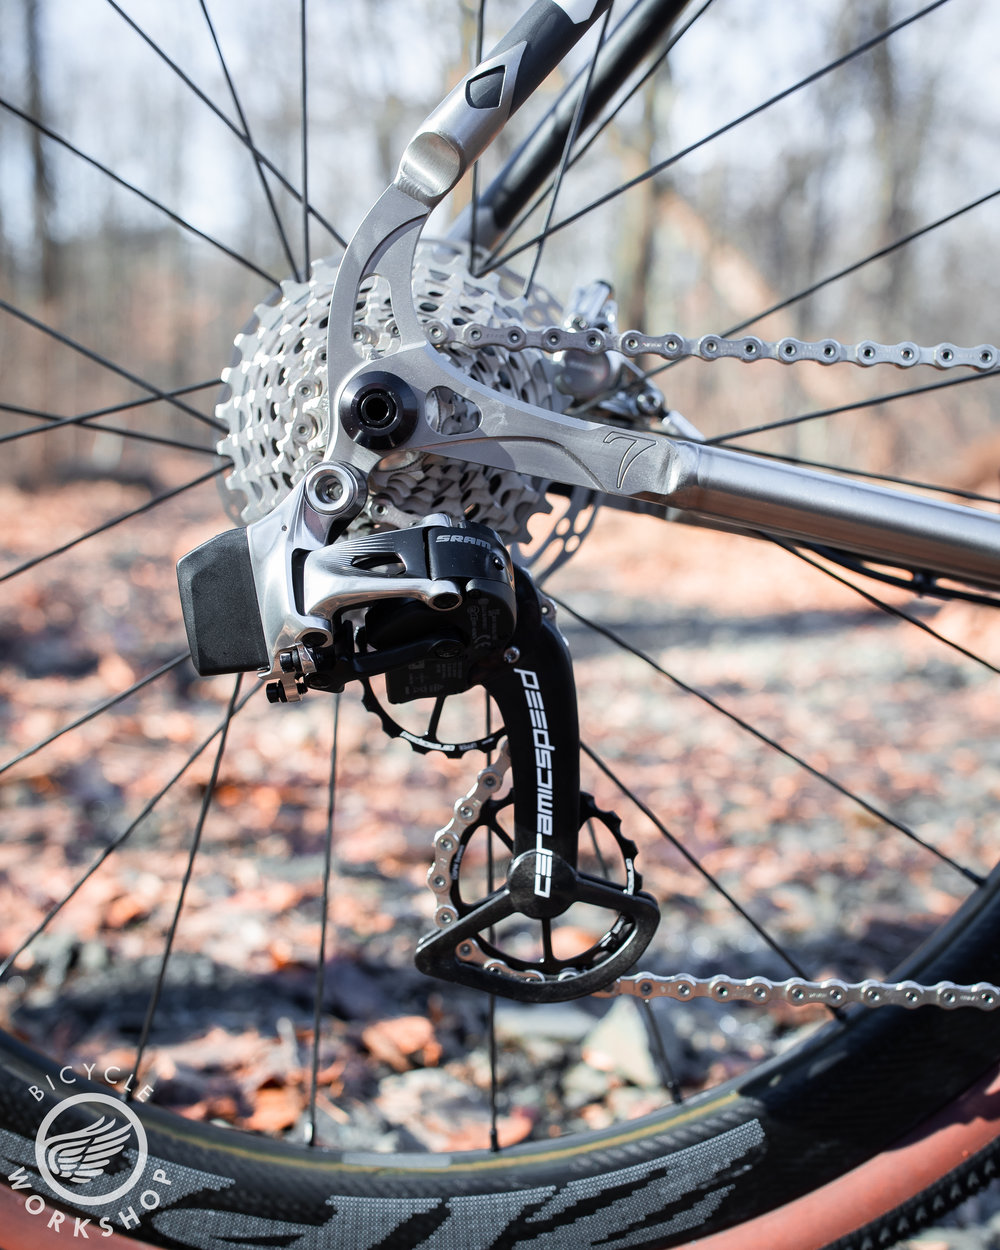 Ceramicspeed pulleys spin quietly and smoothly